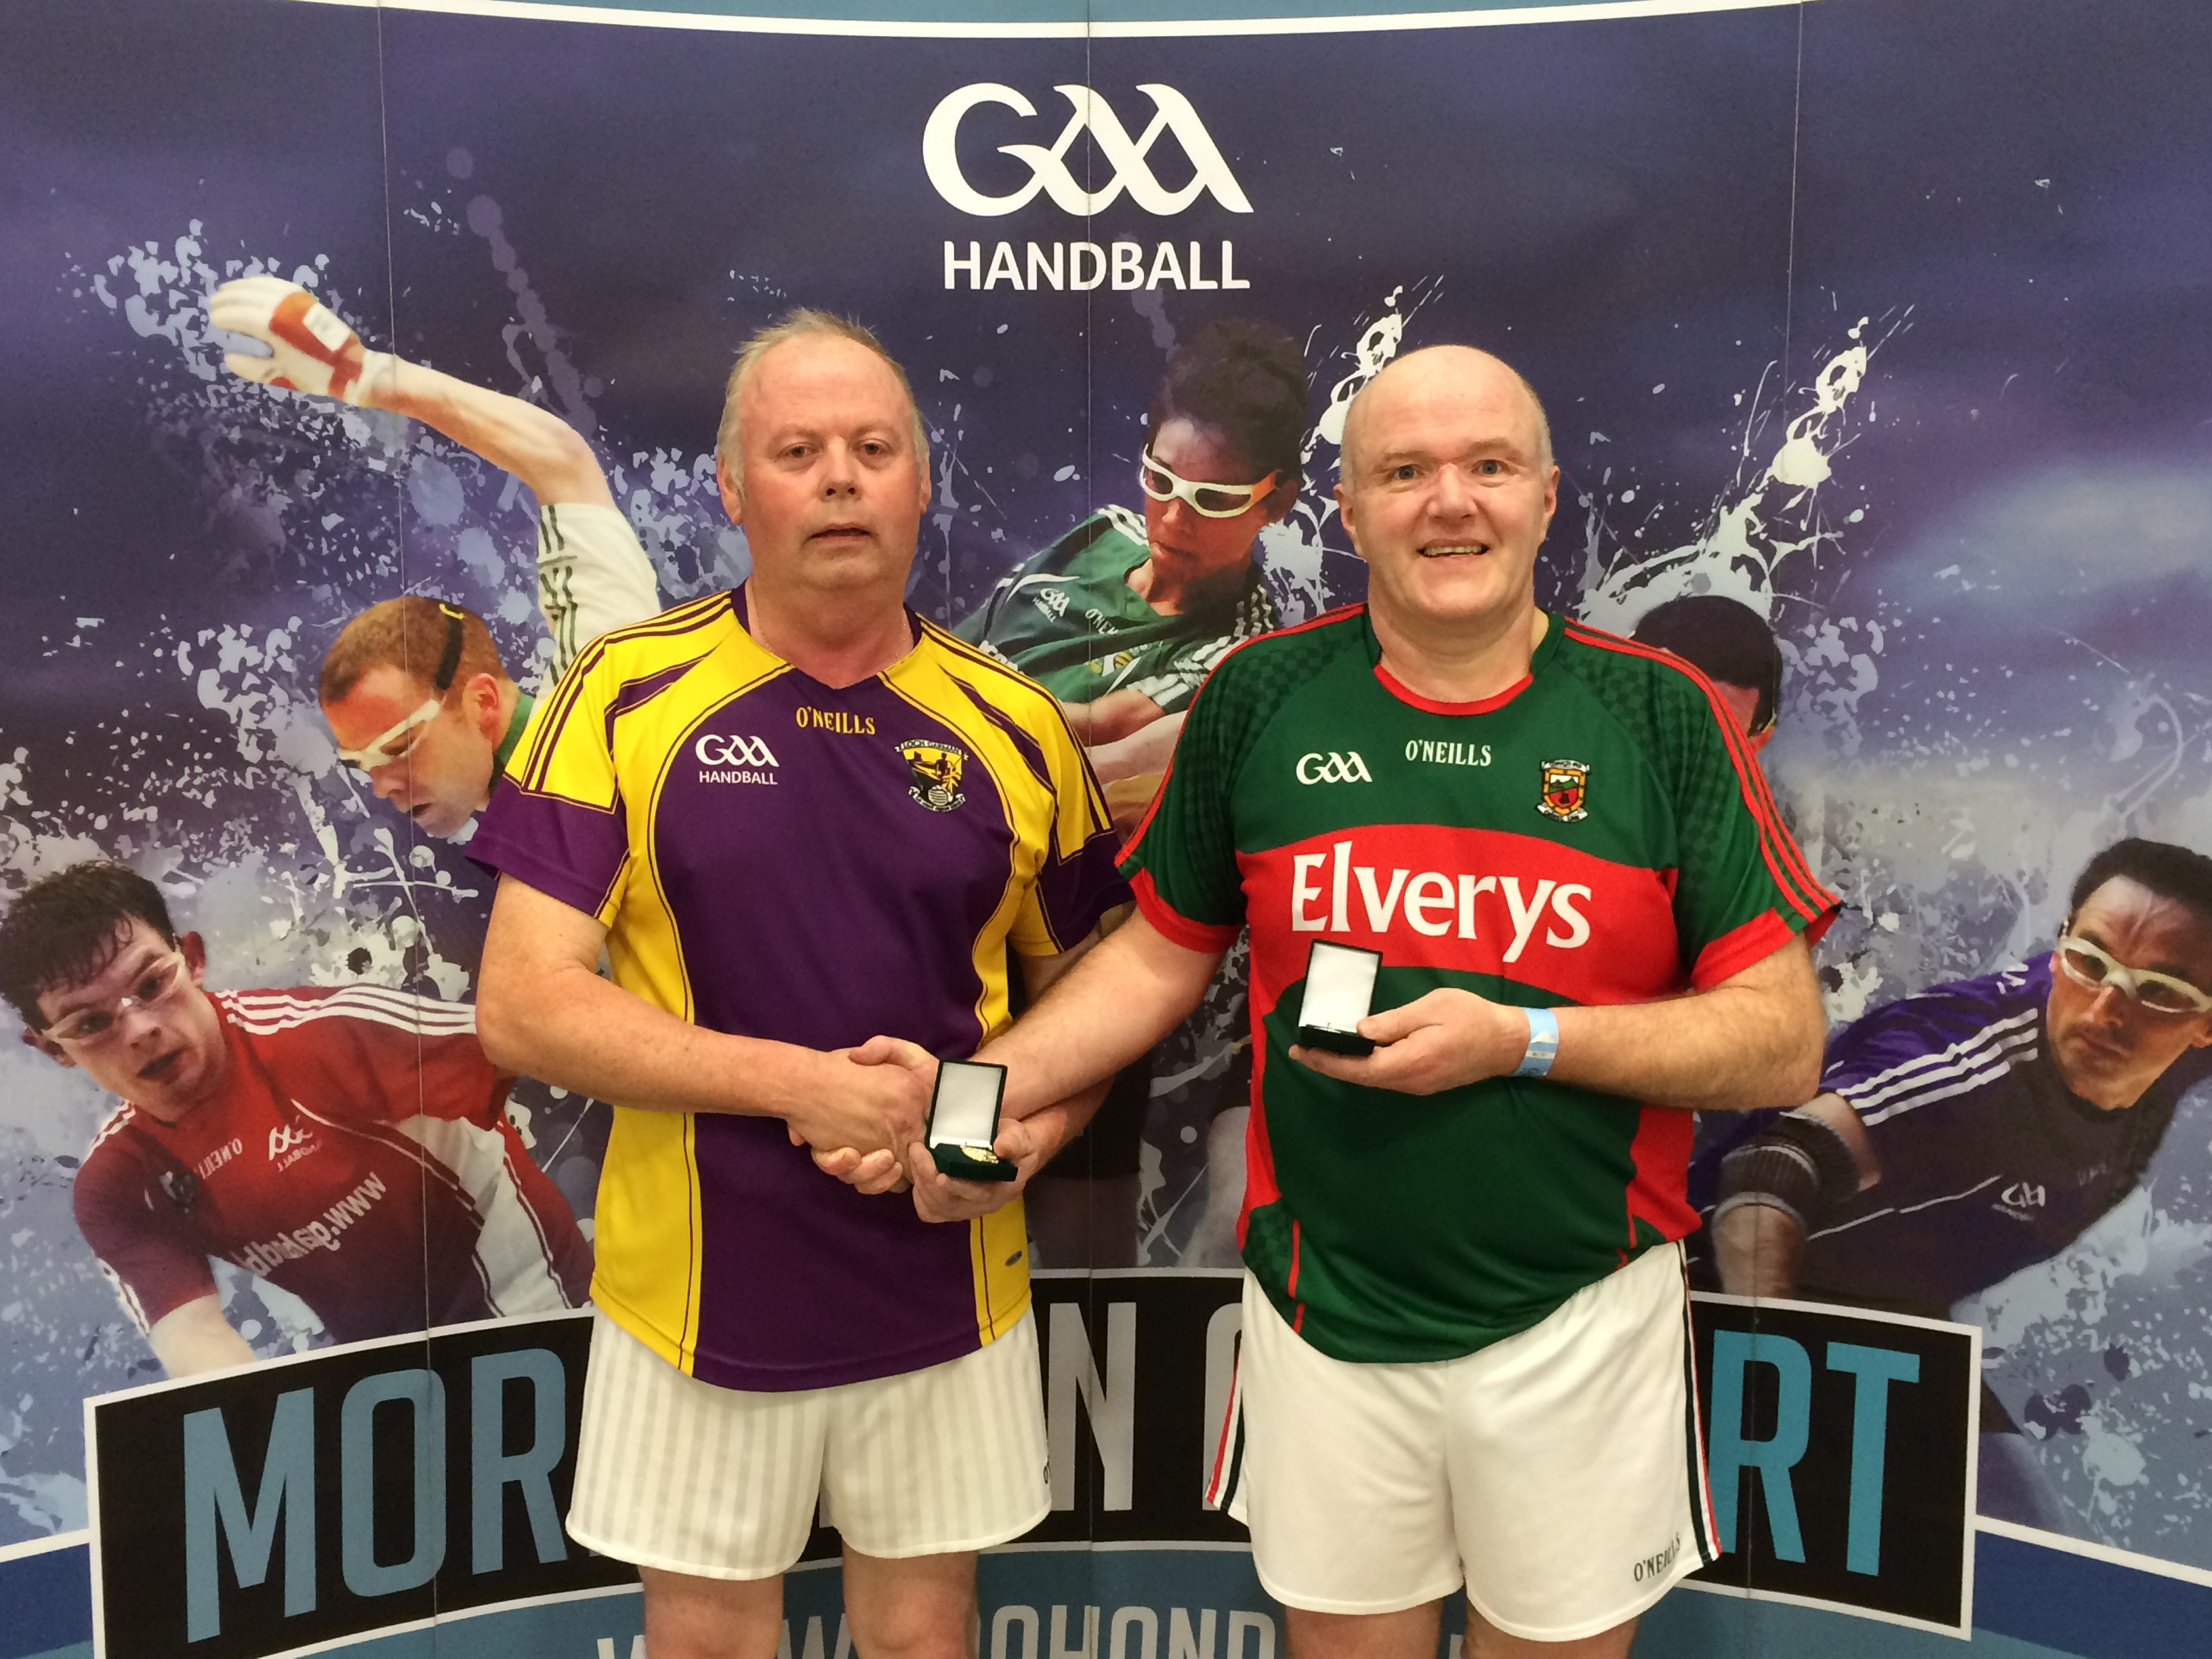 ea77ecc6536 A victorious Mick Armstrong following his victory over Tom McCormack